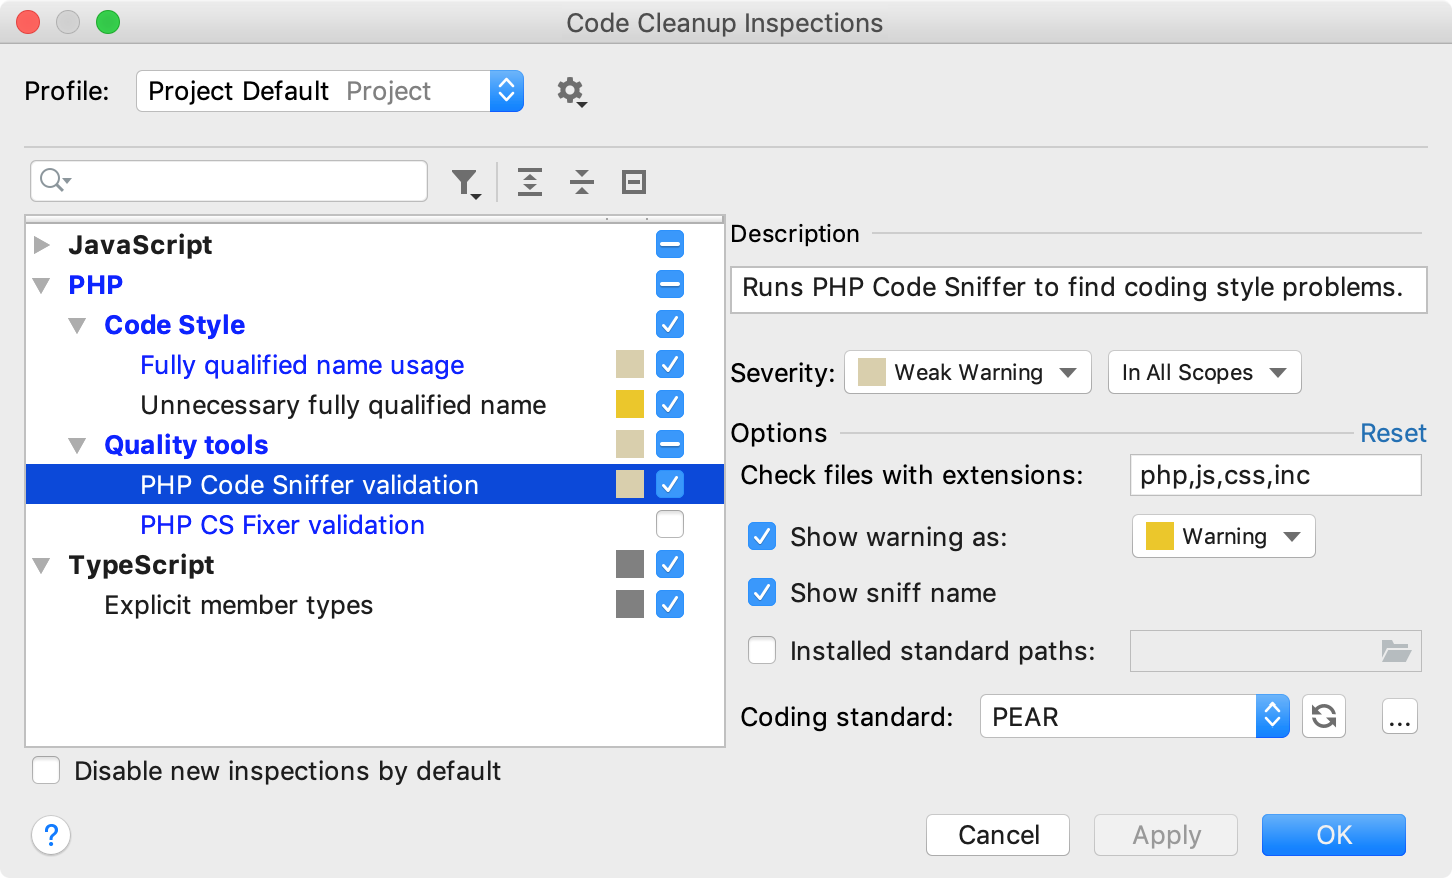 the Code Cleanup Inspections dialog